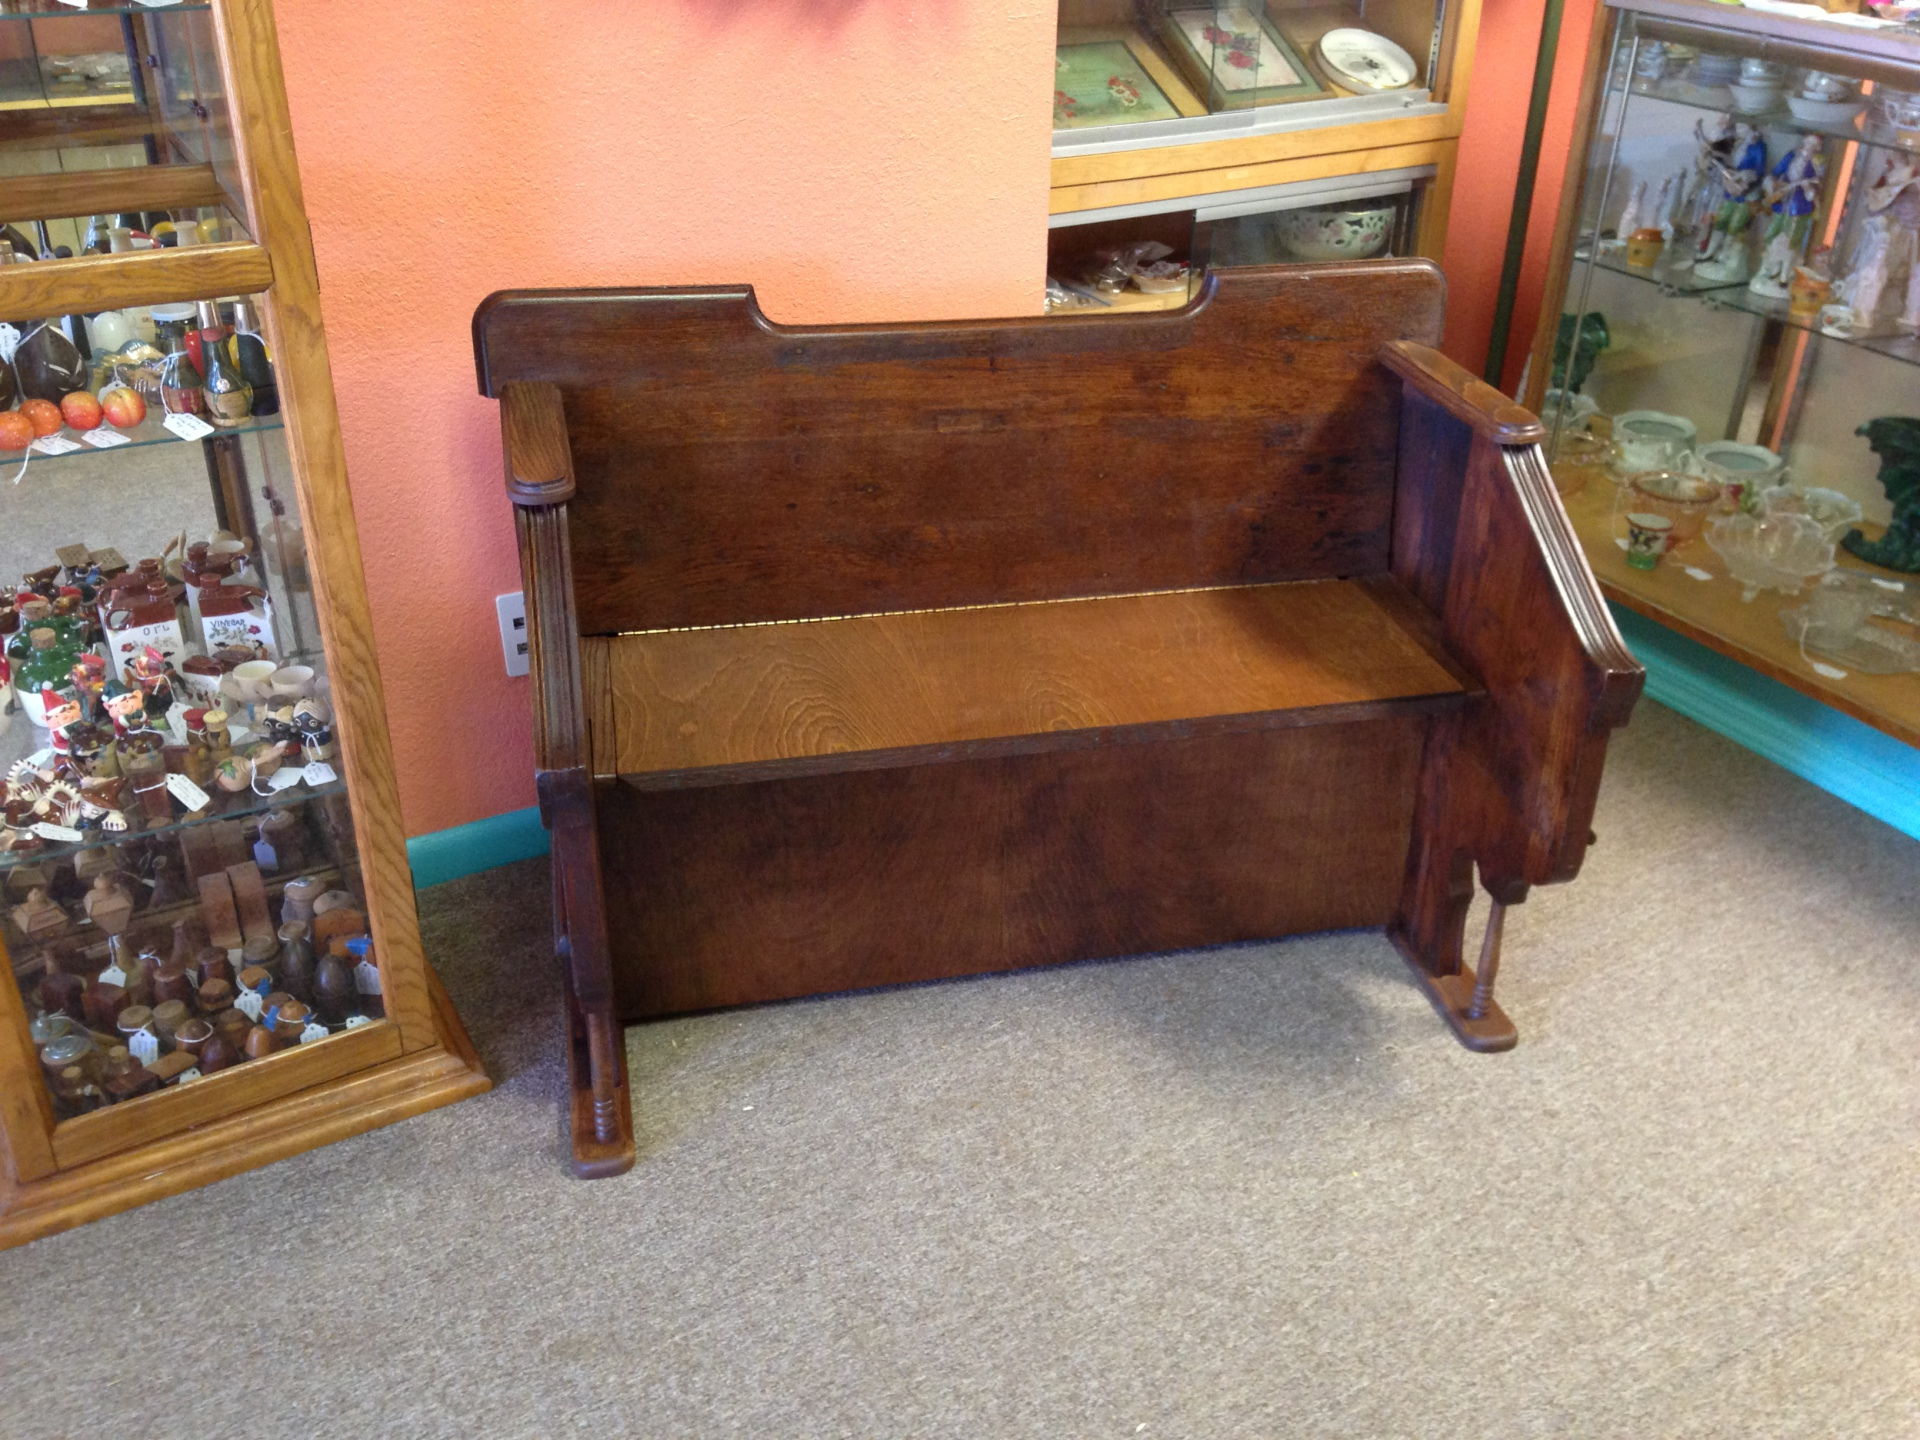 Antique Organ Frame Made Into a Bench